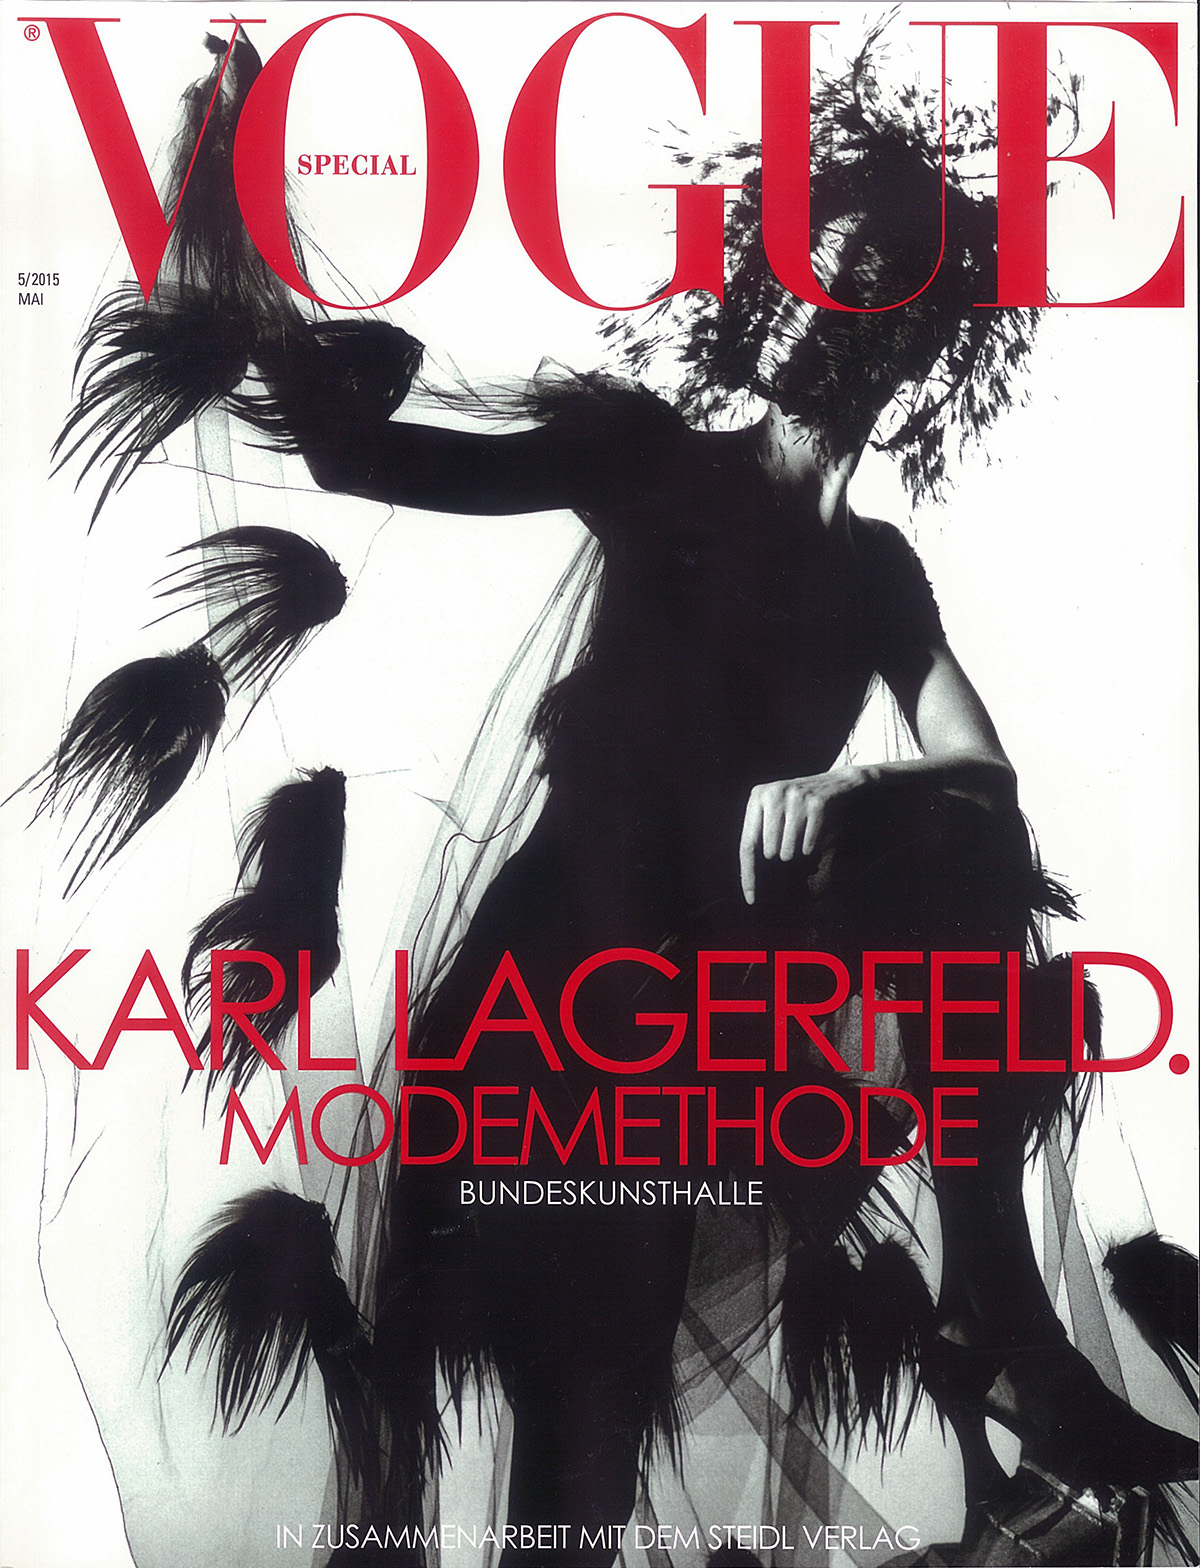 Karl Lagerfeld, Modemethode